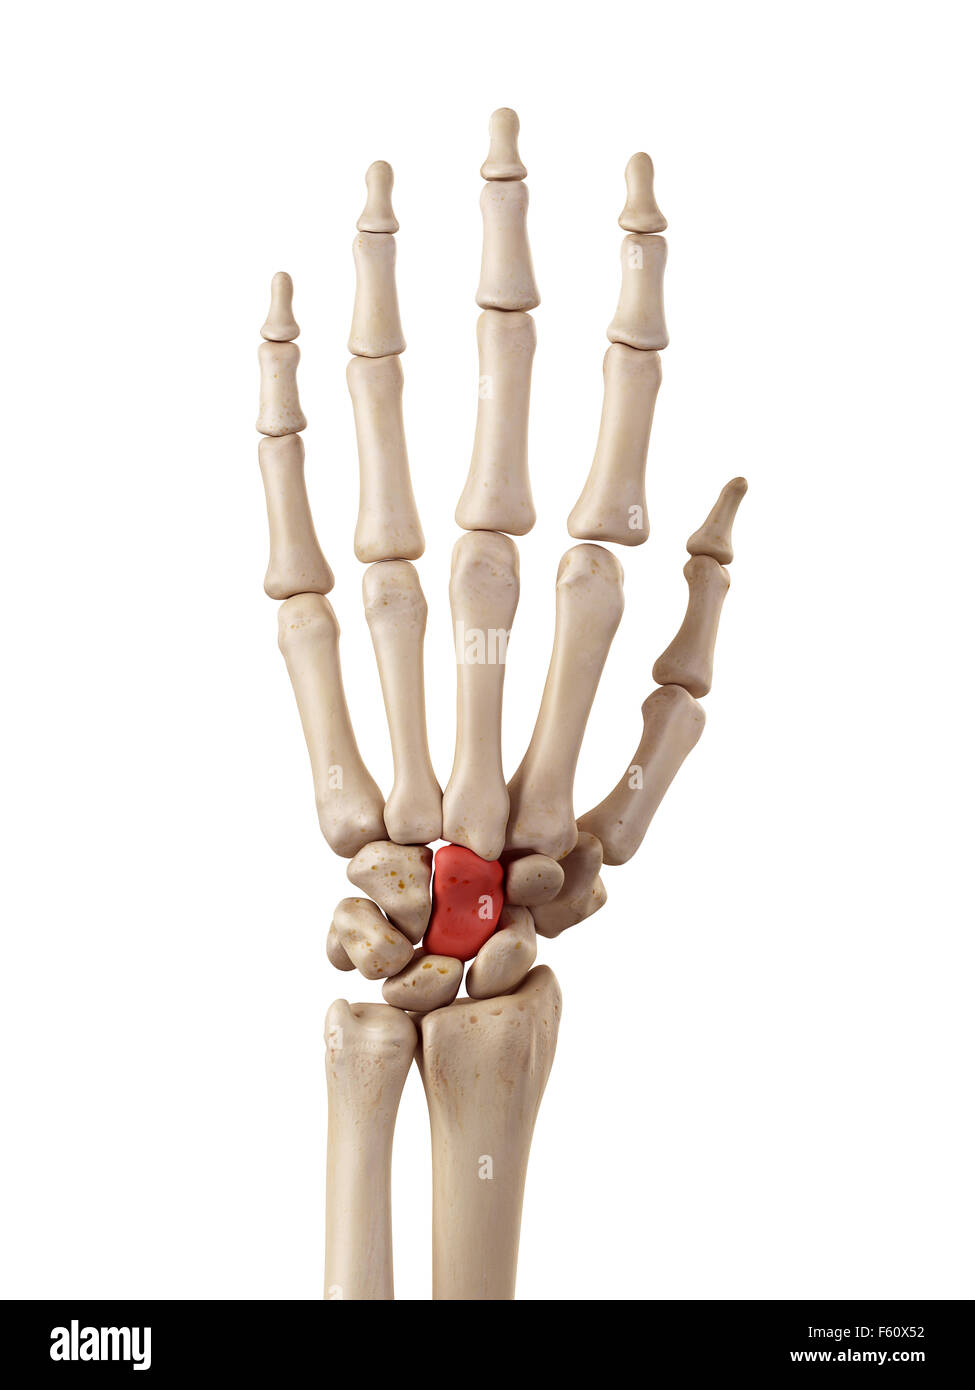 medical accurate illustration of the capitale bone - Stock Image